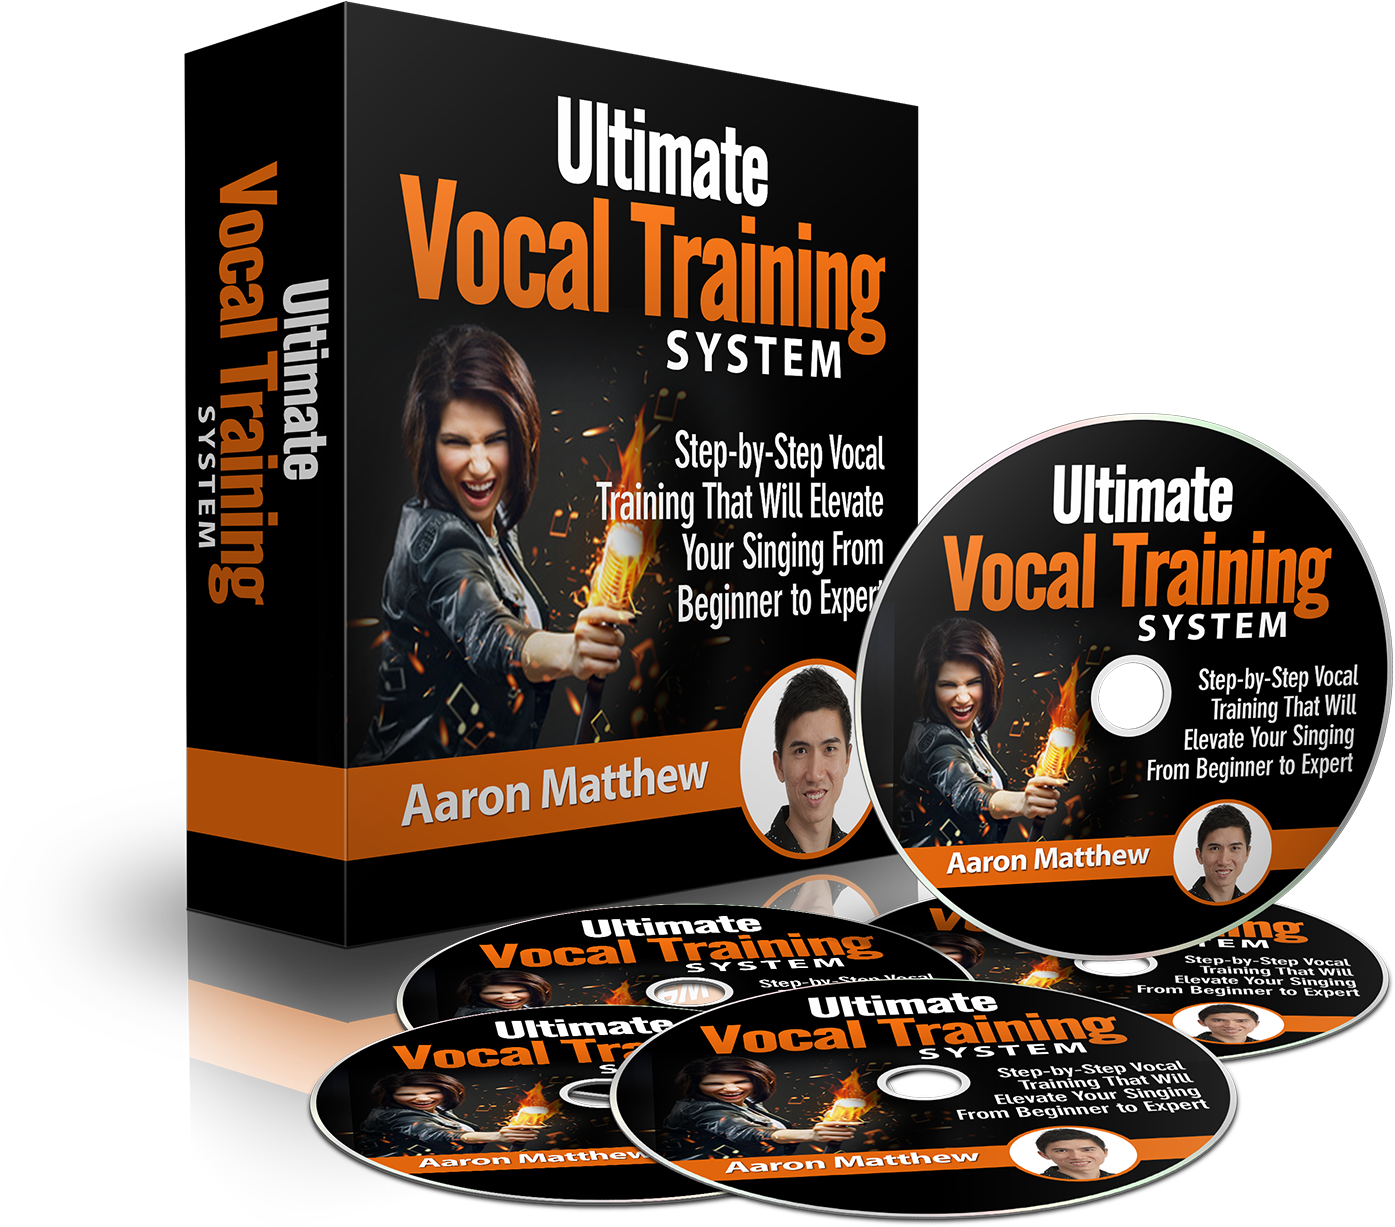 Ultimate Vocal Training System